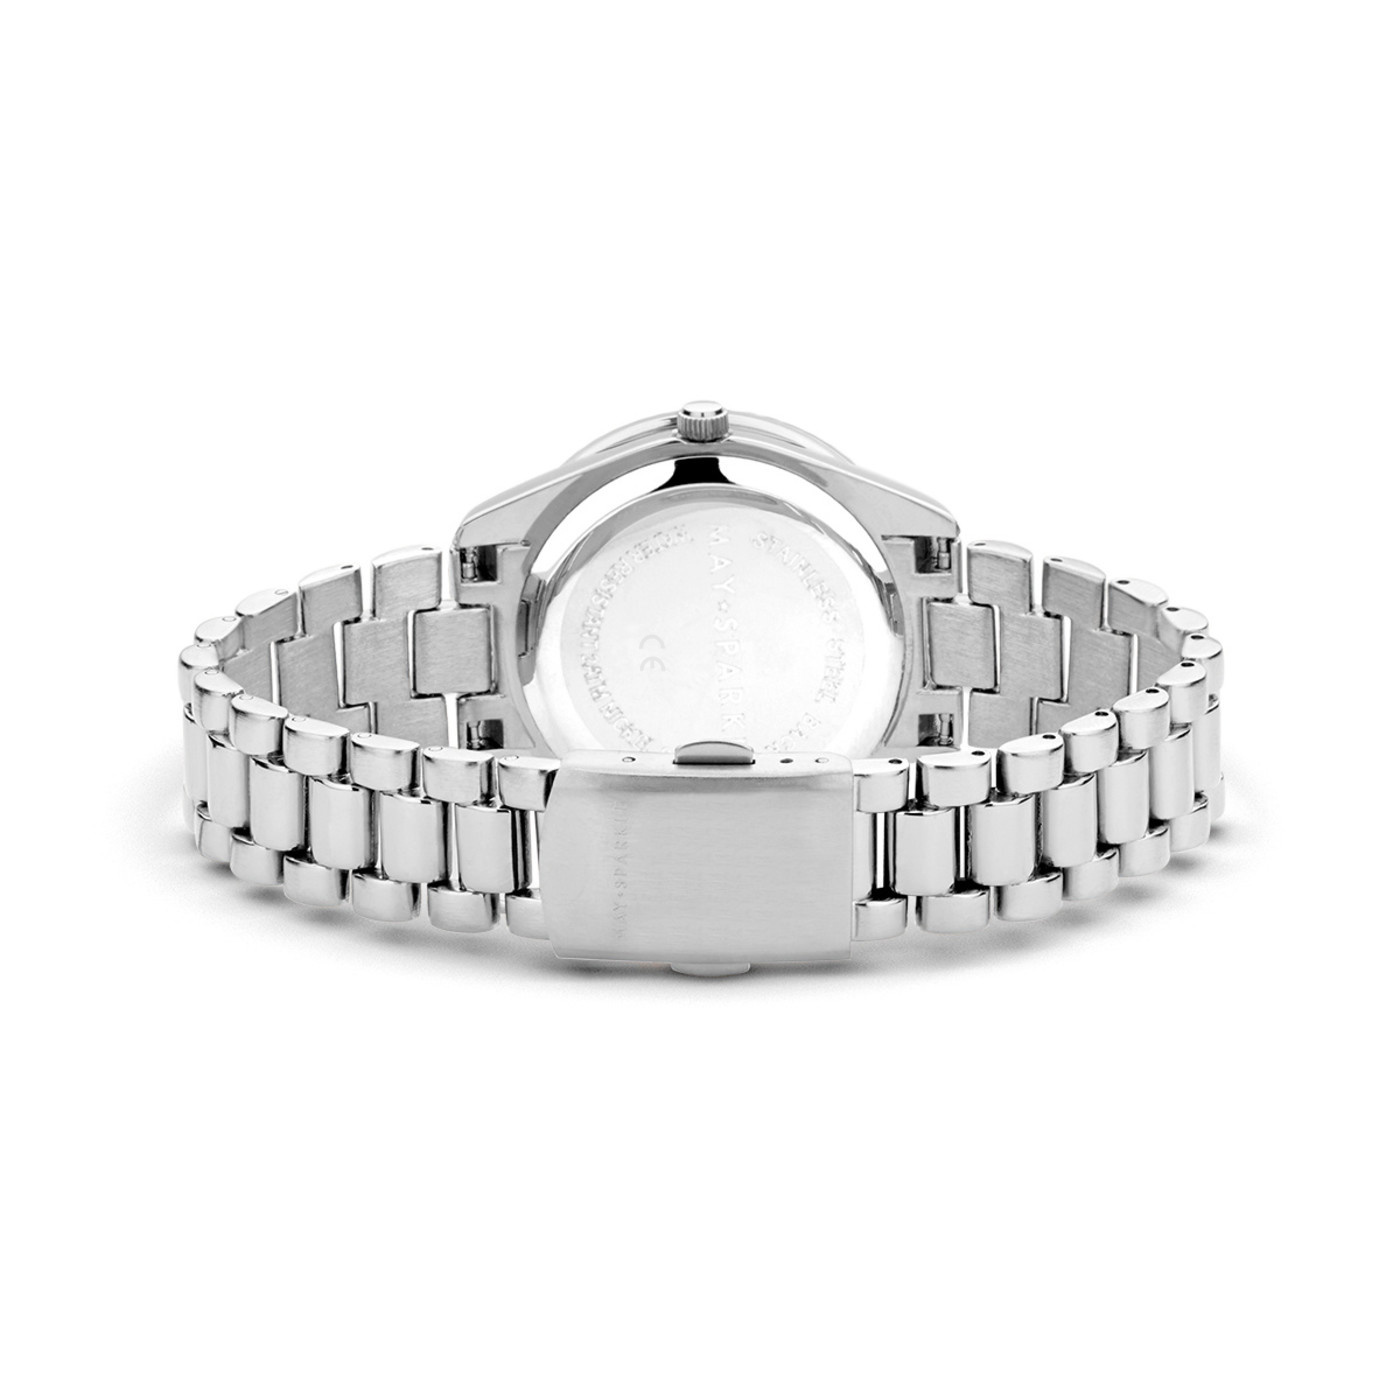 May Sparkle Luxurious Life ladies watch silver colored and pink